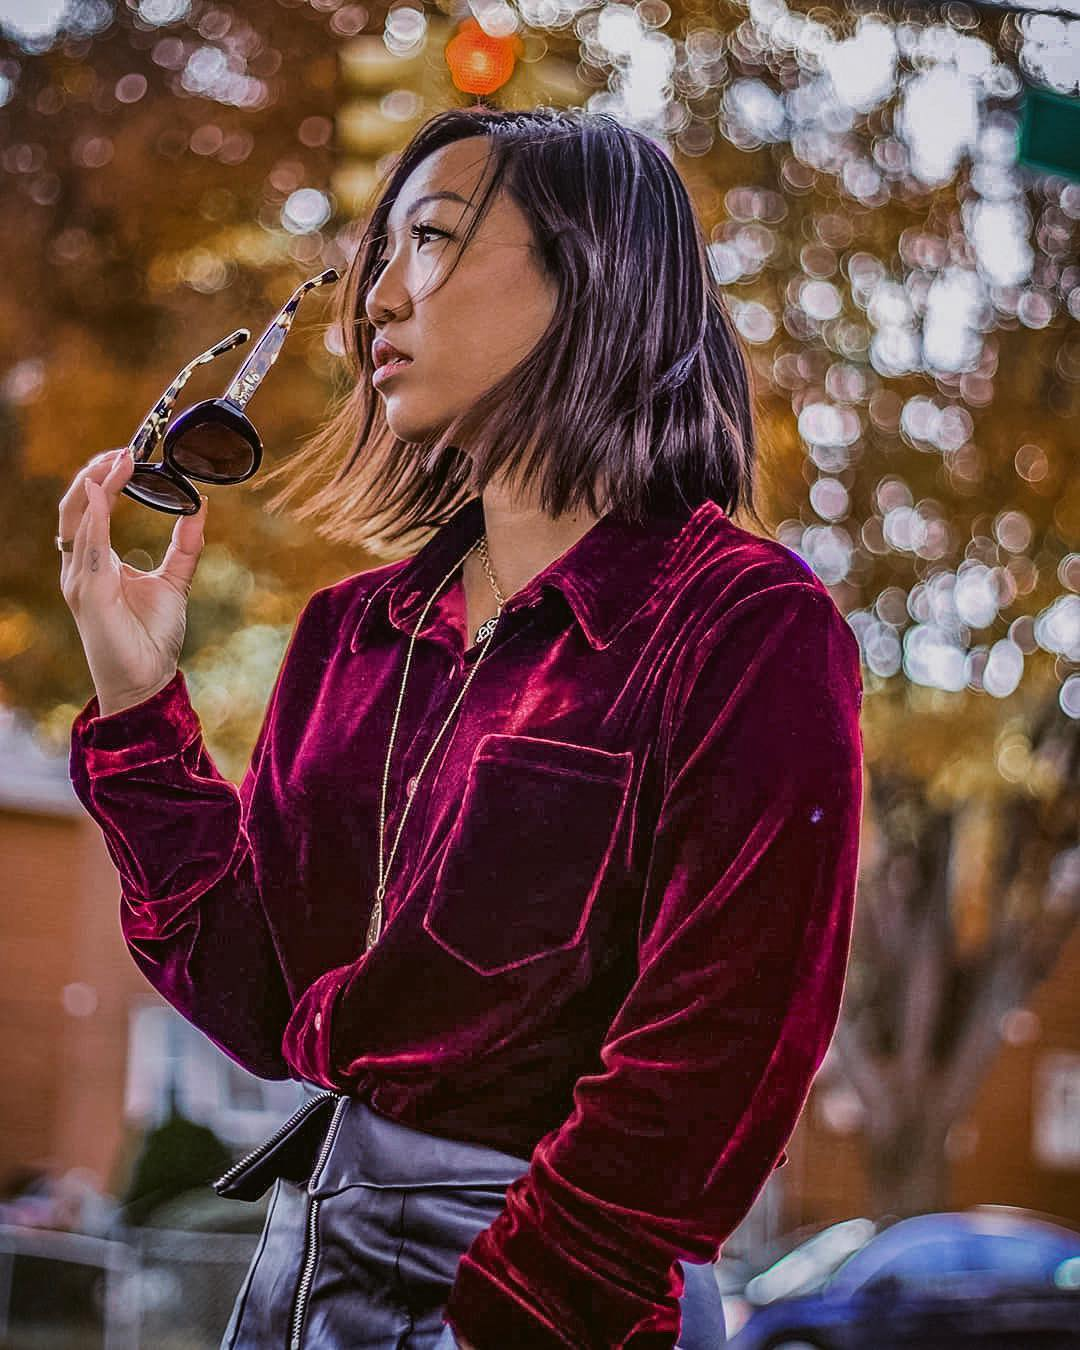 Velour Shirt In Maroon Tucked In Black Leather Skirt: Fall OOTD 2019